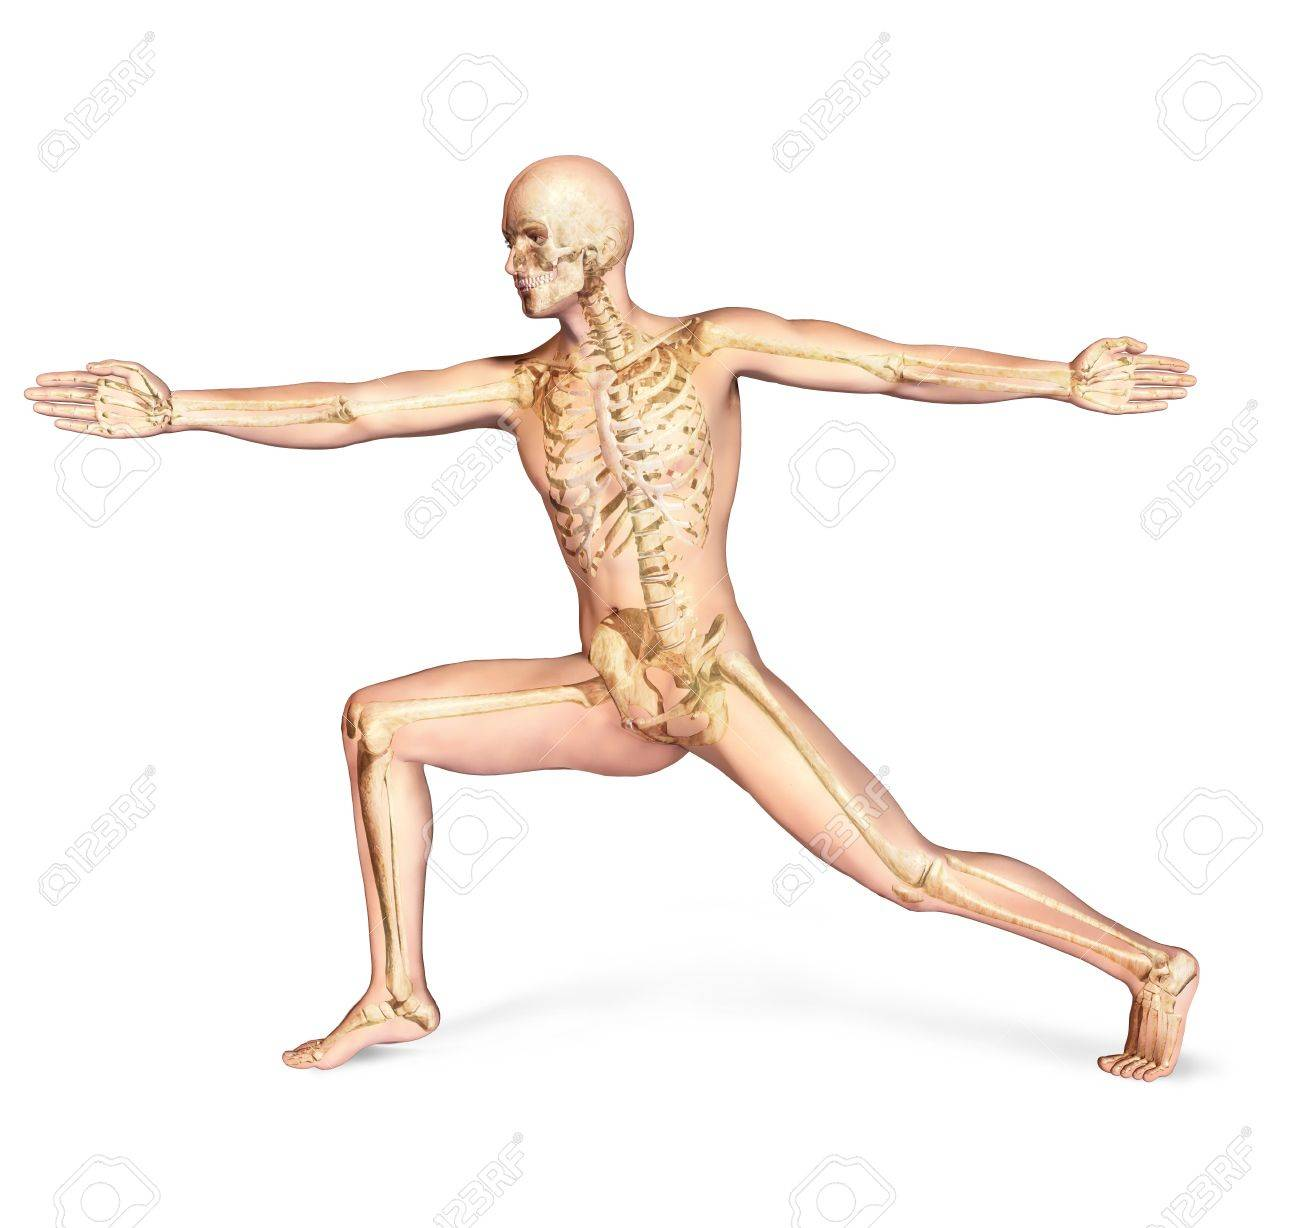 Human male in athletic dynamic posture, with full skeleton superimposed  On white background, with clipping path included Stock Photo - 19893730